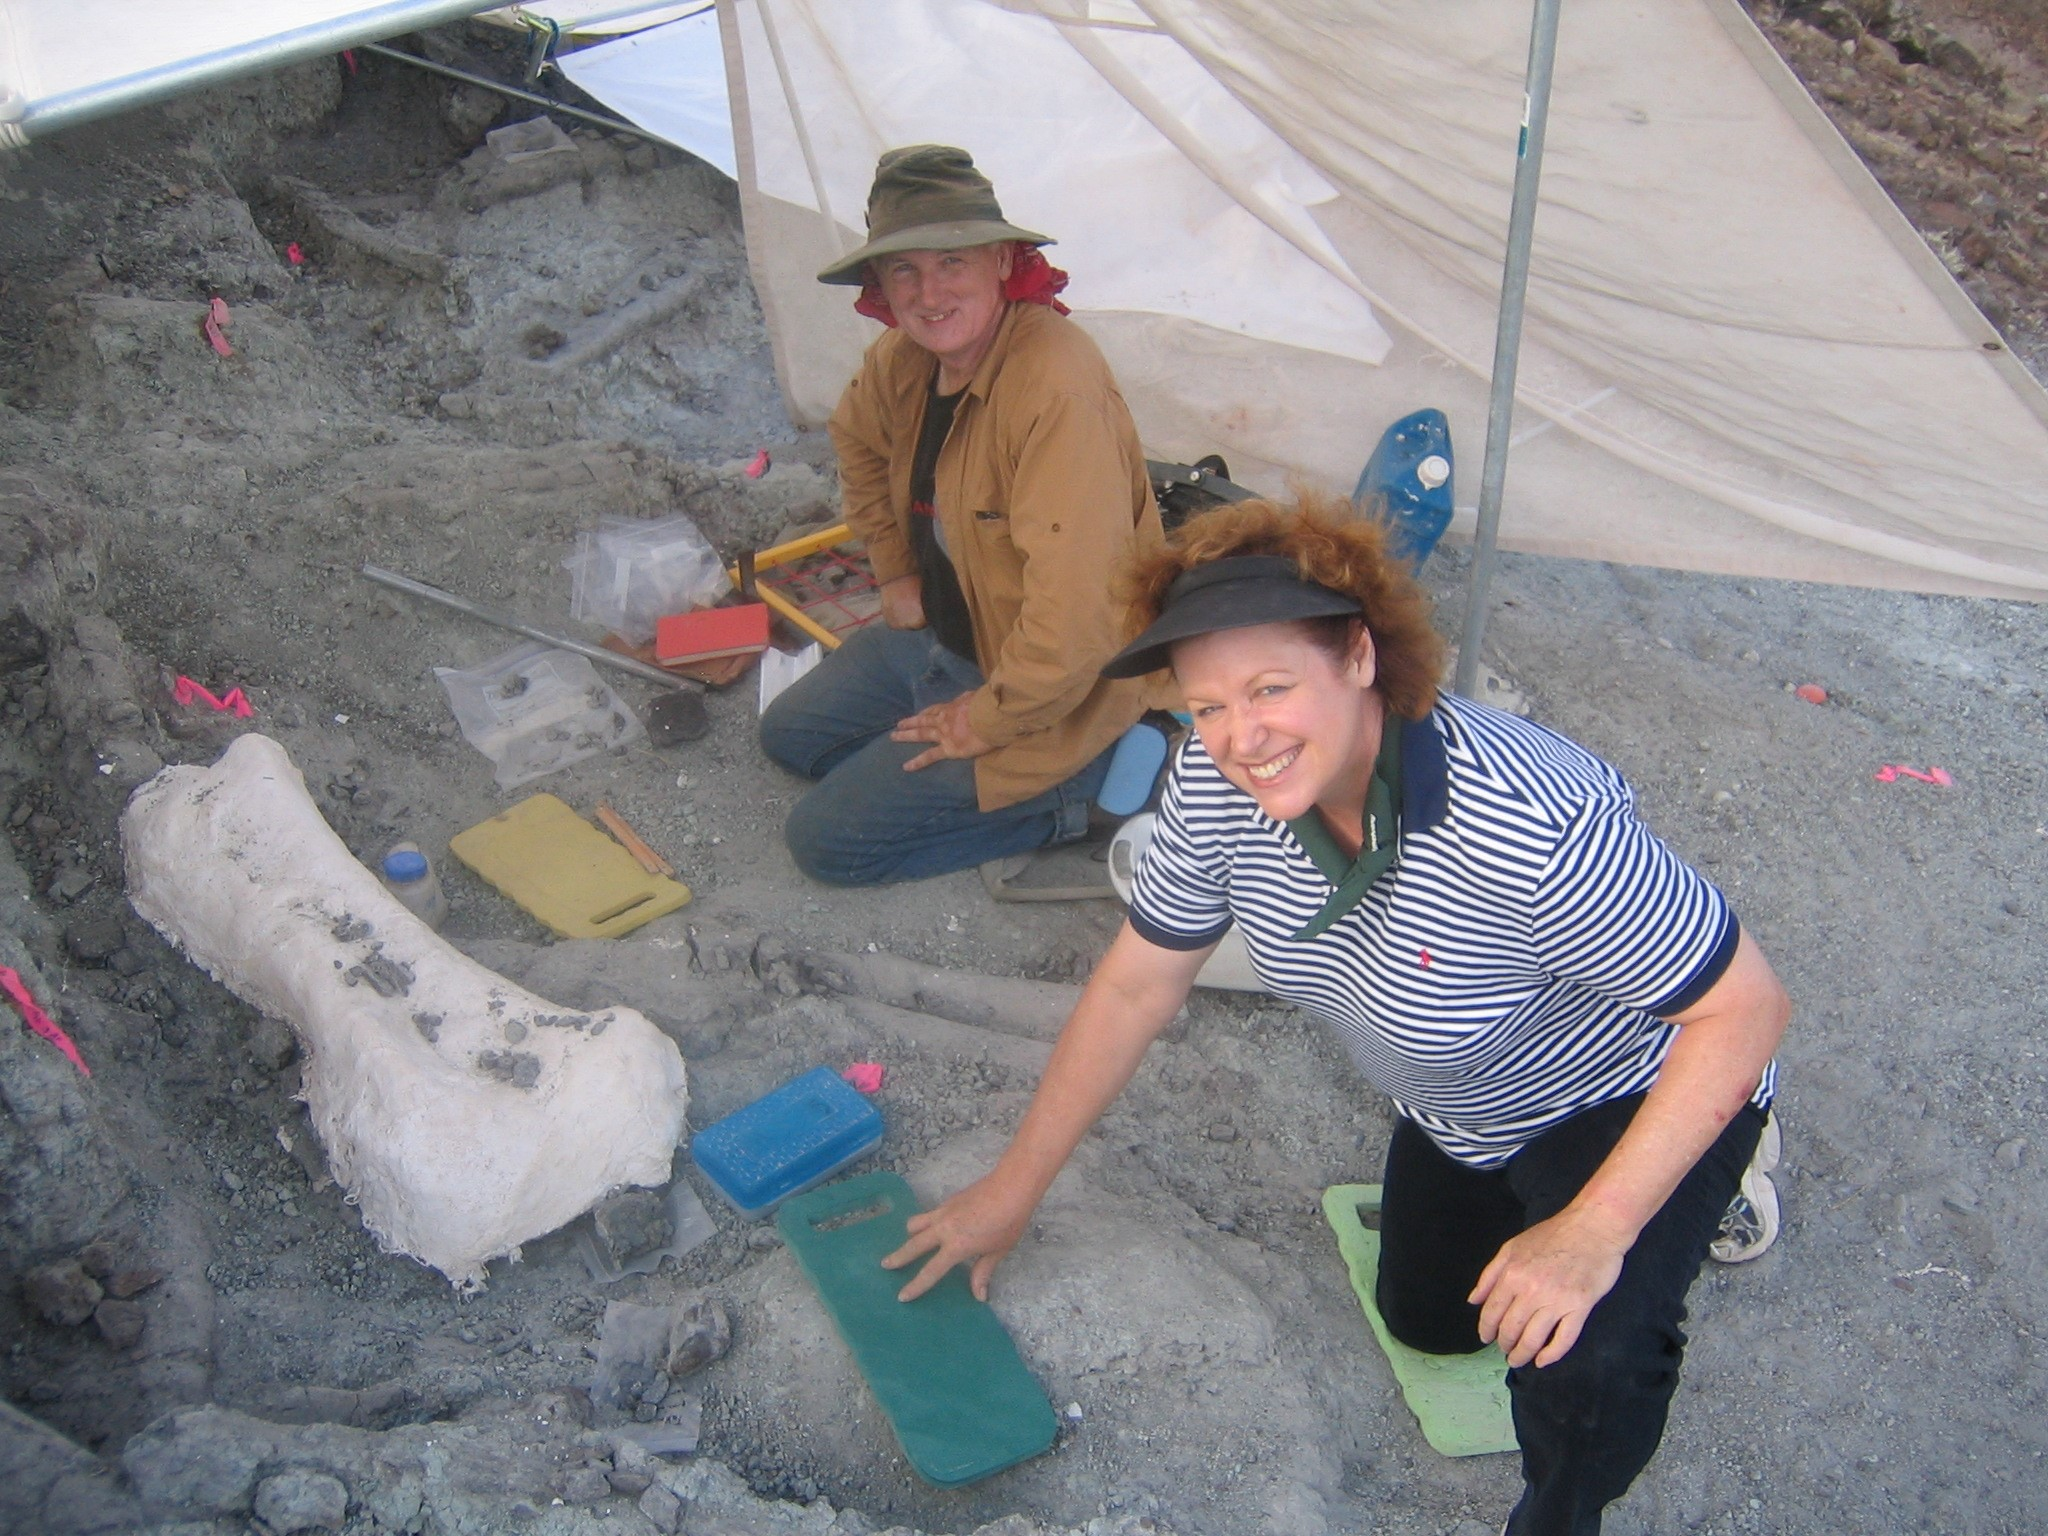 Janet and Michael digging for dinosaurs